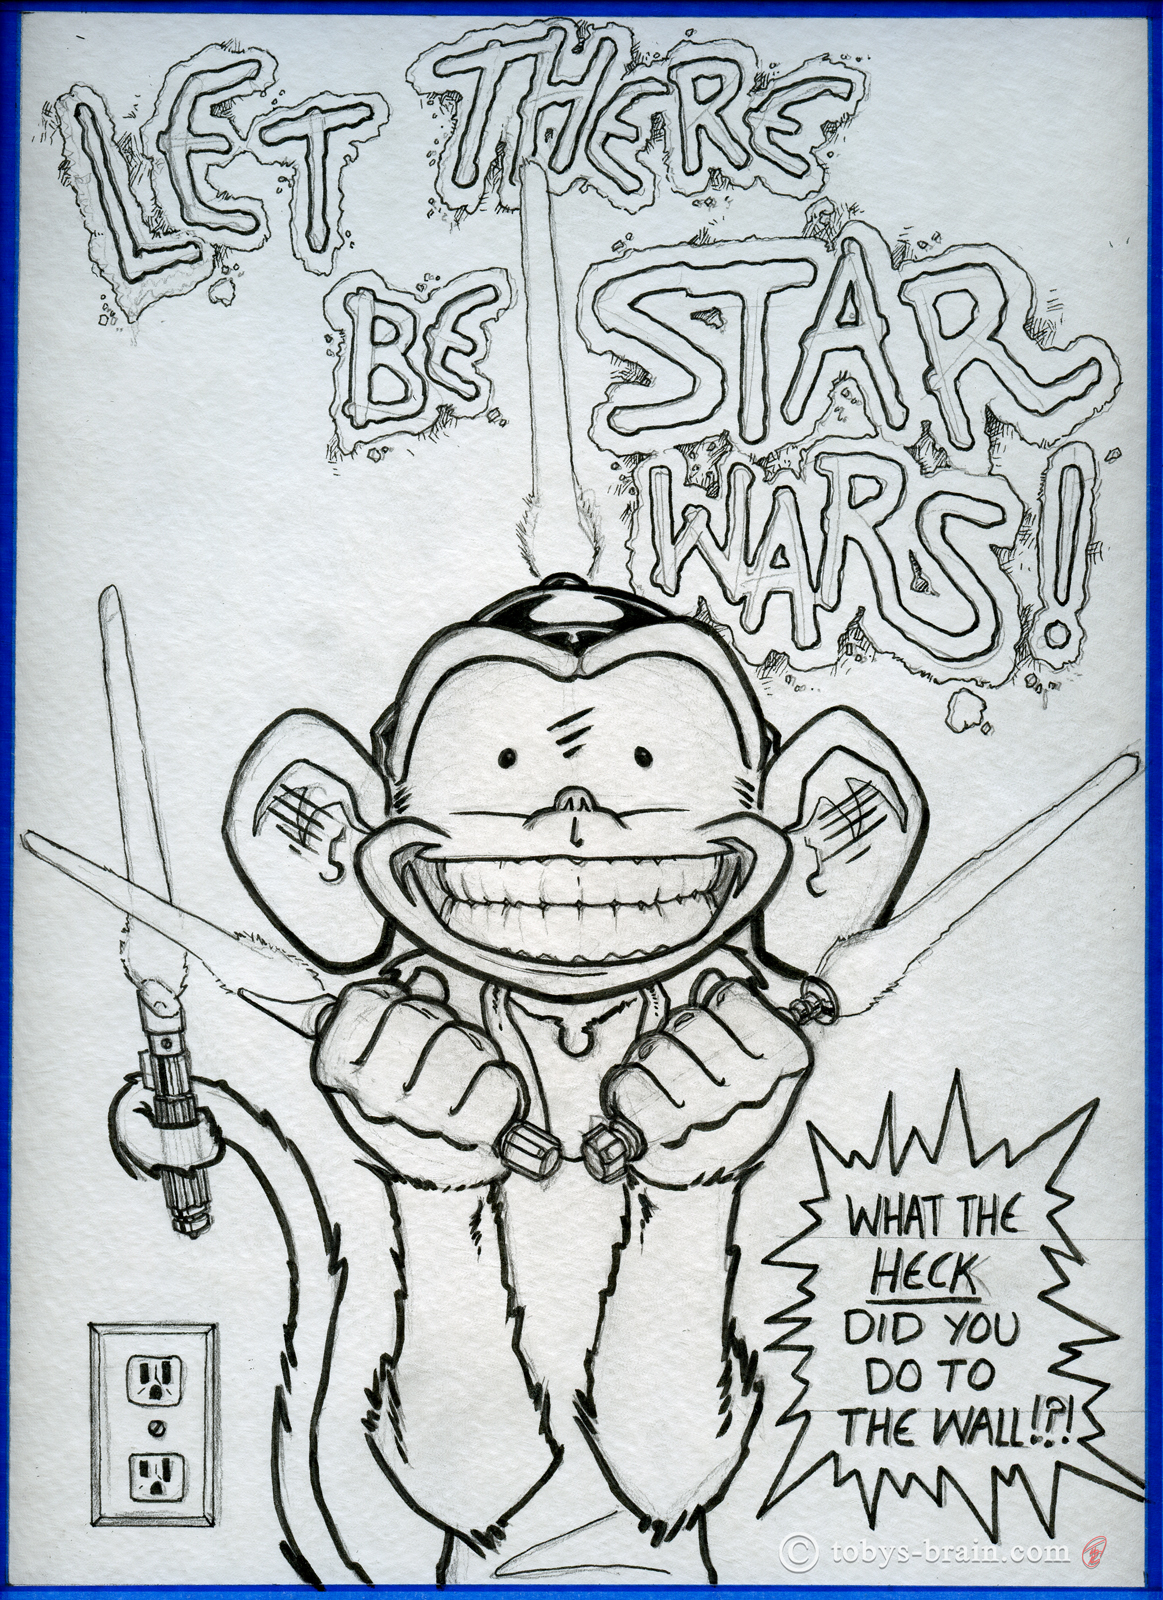 toby-gray-pmd-let-there-be-star-wars-inks